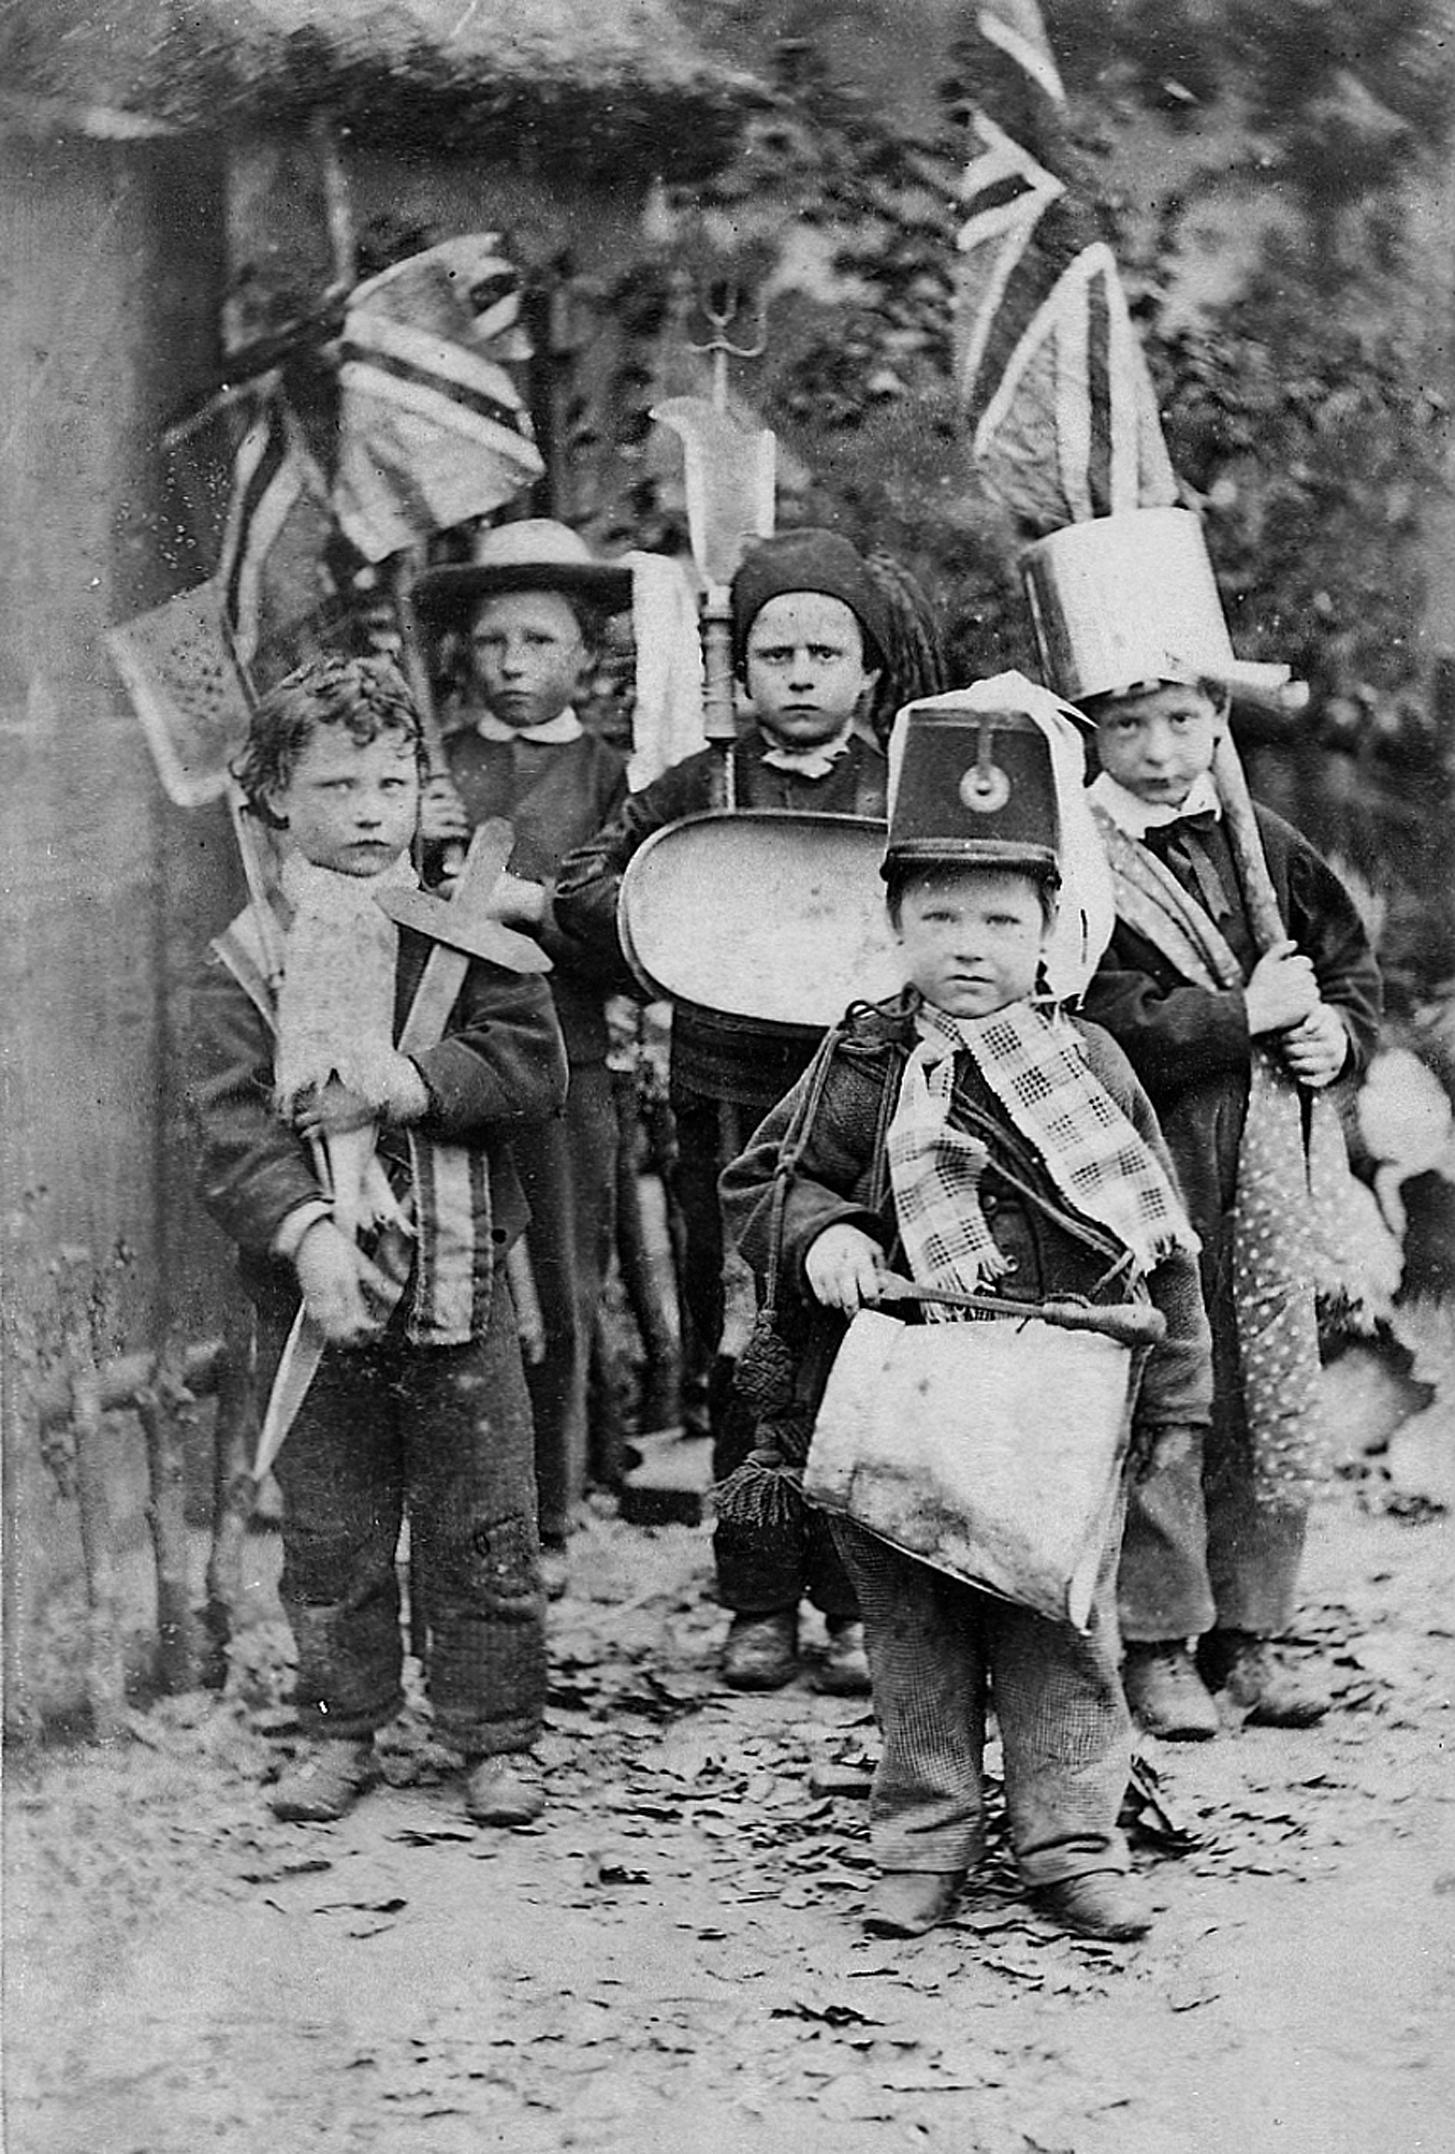 COPY1/13 (300) Children dressed as soldiers 1867